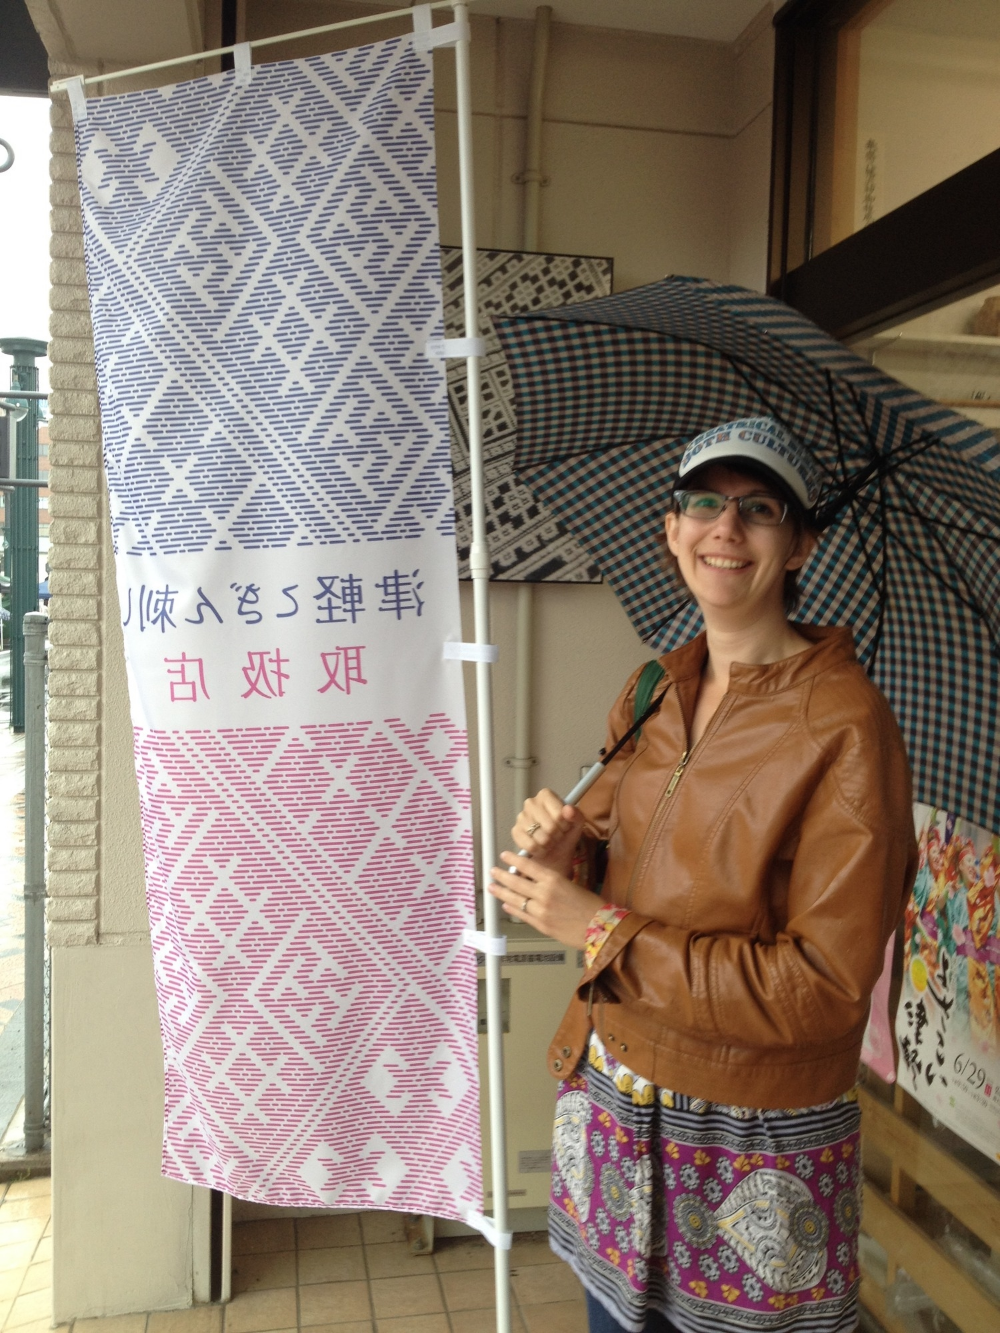 Outside the Koginzashi shop in Hirosaki.